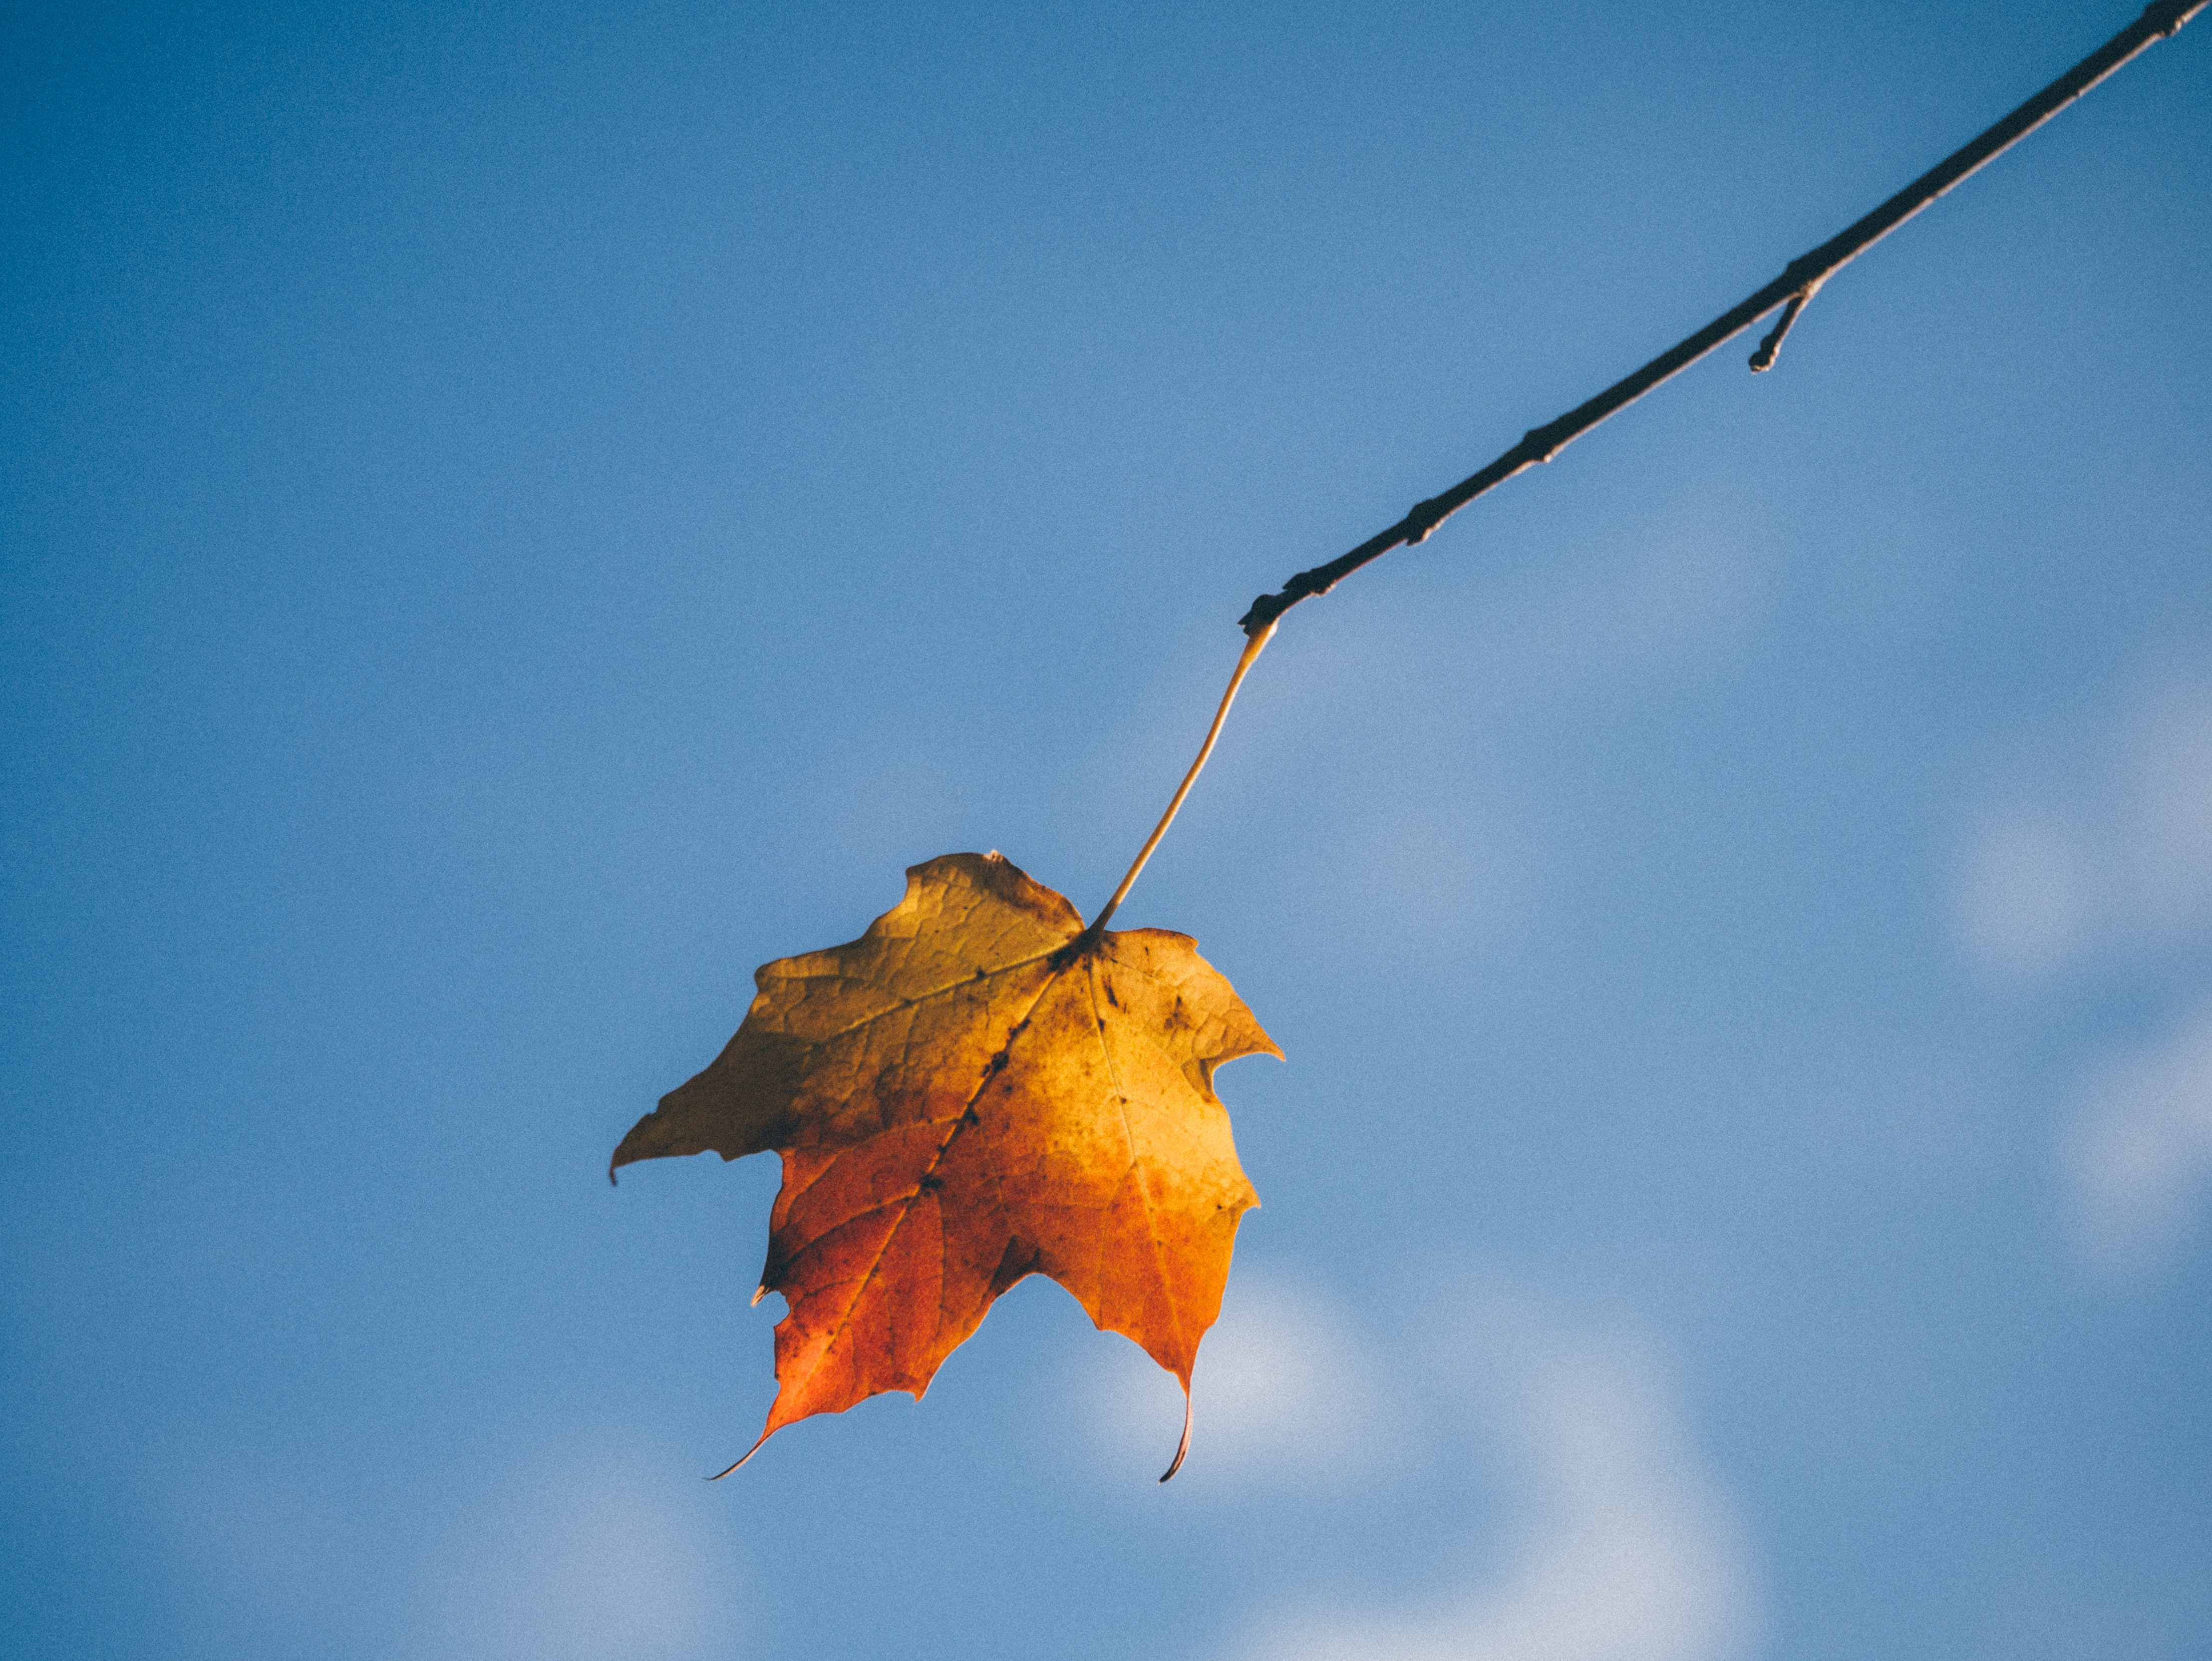 A translucent autumn leaf hanging down from the tip of a branch